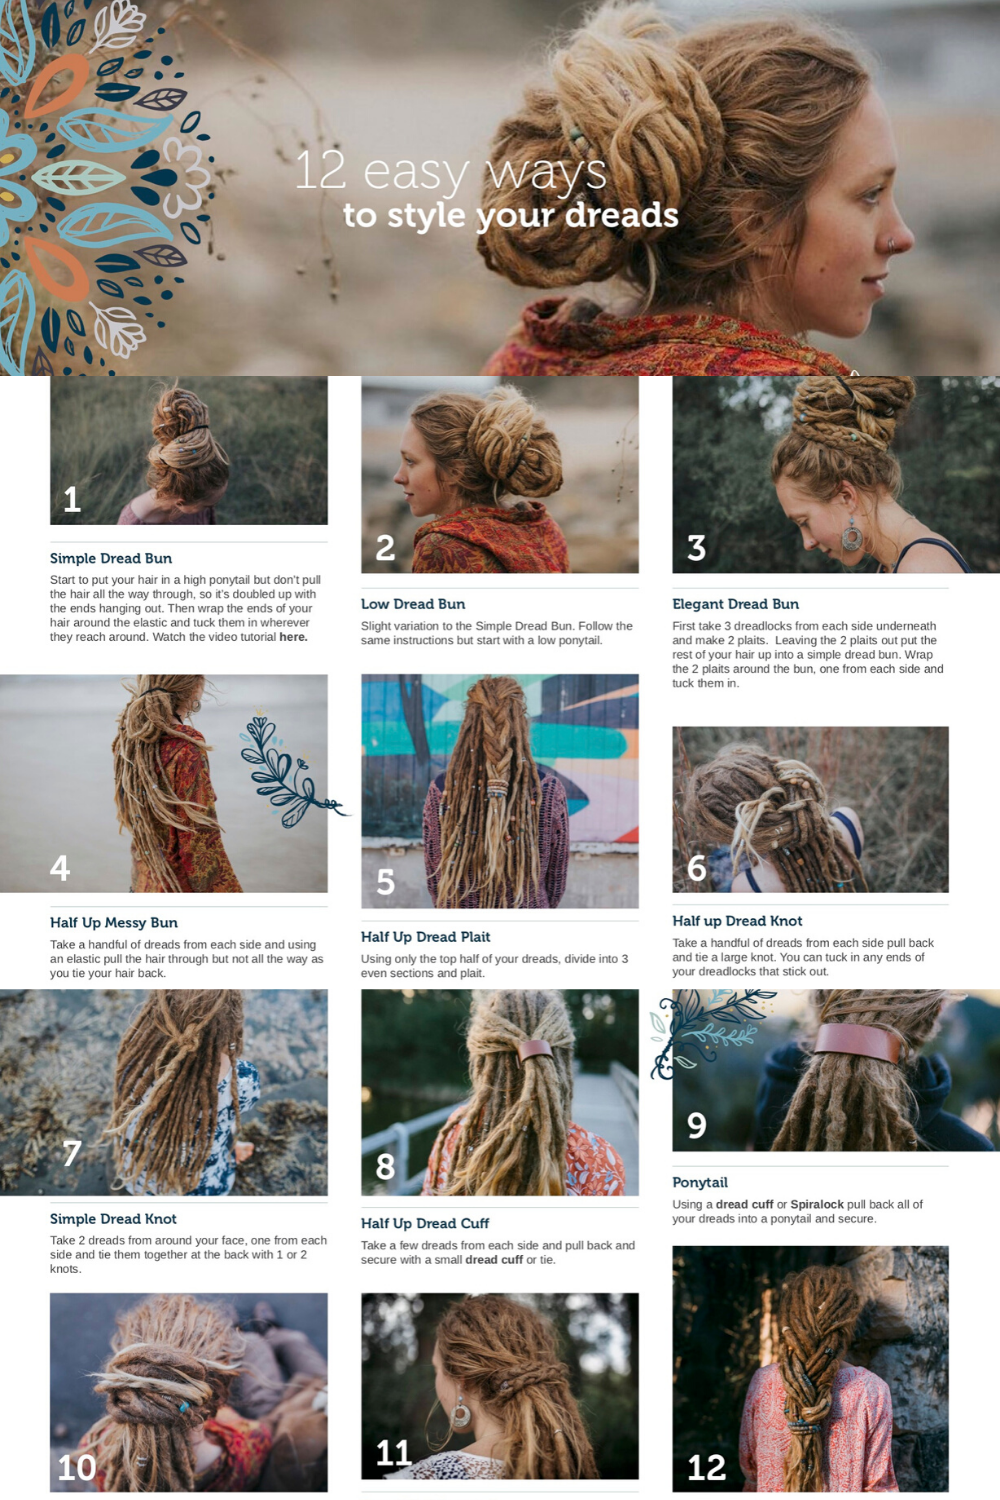 12 Easy Ways To Style Your Dreads In 2020 Dread Hairstyles Dreadlock Accessories Hair Styles